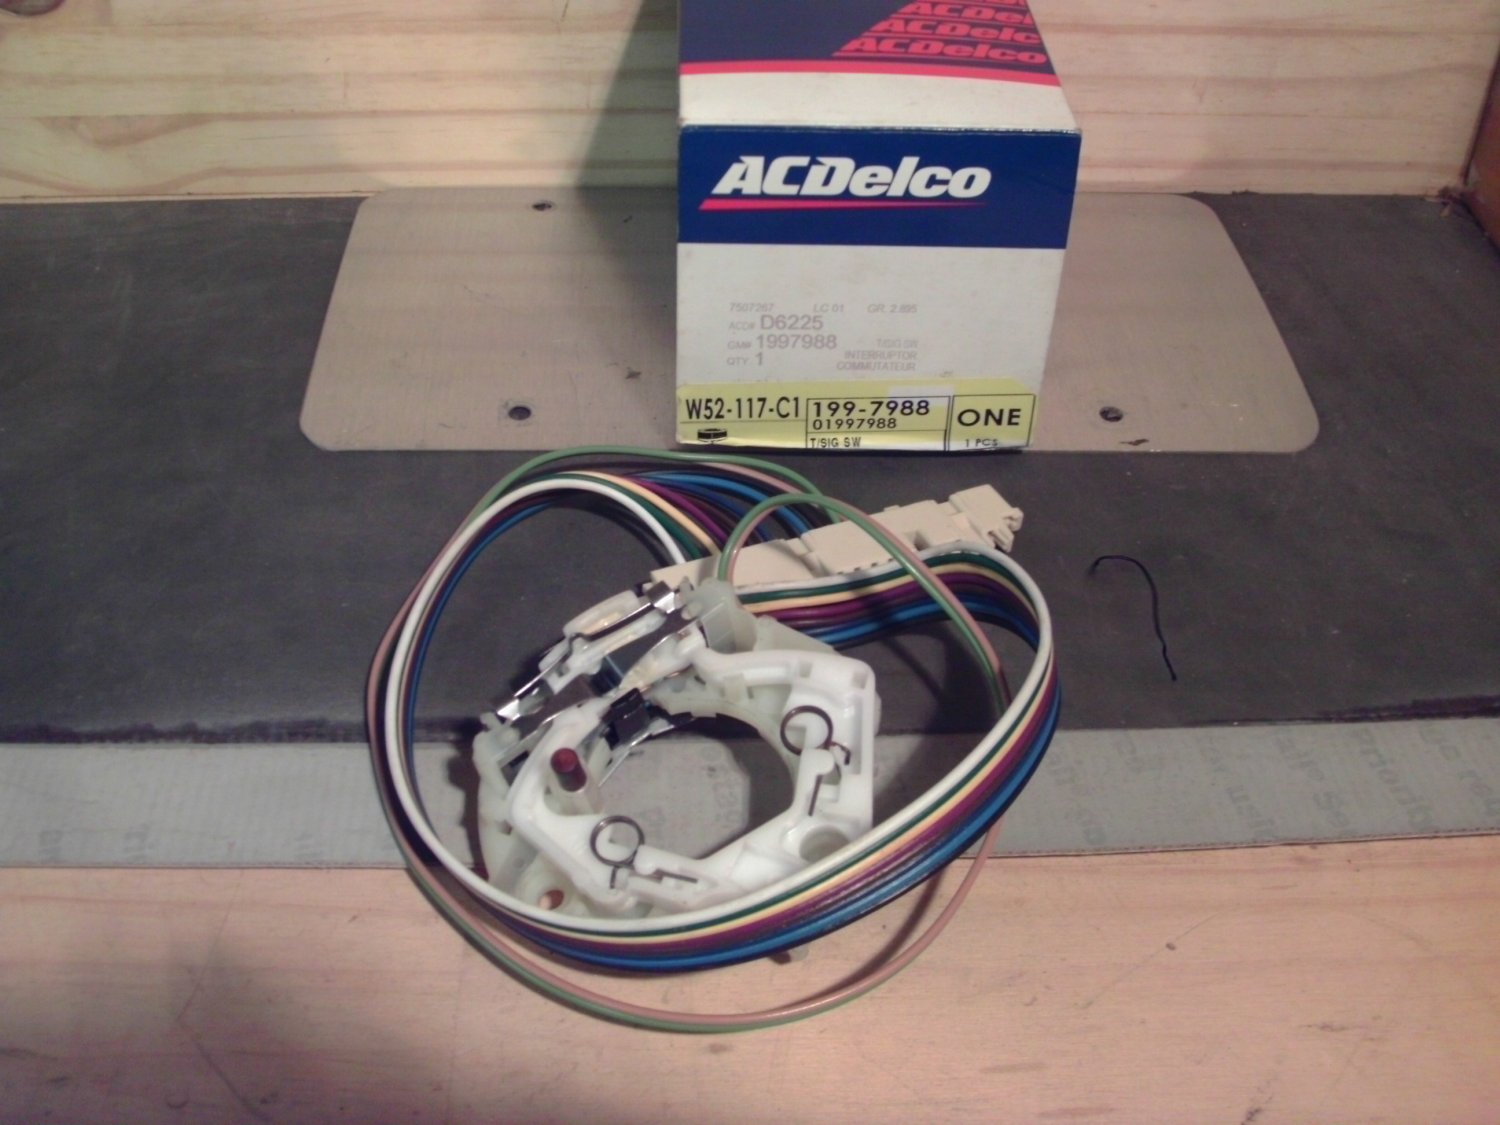 ACDelco D6225 General Motors GM 1997988 Turn Signal Switch